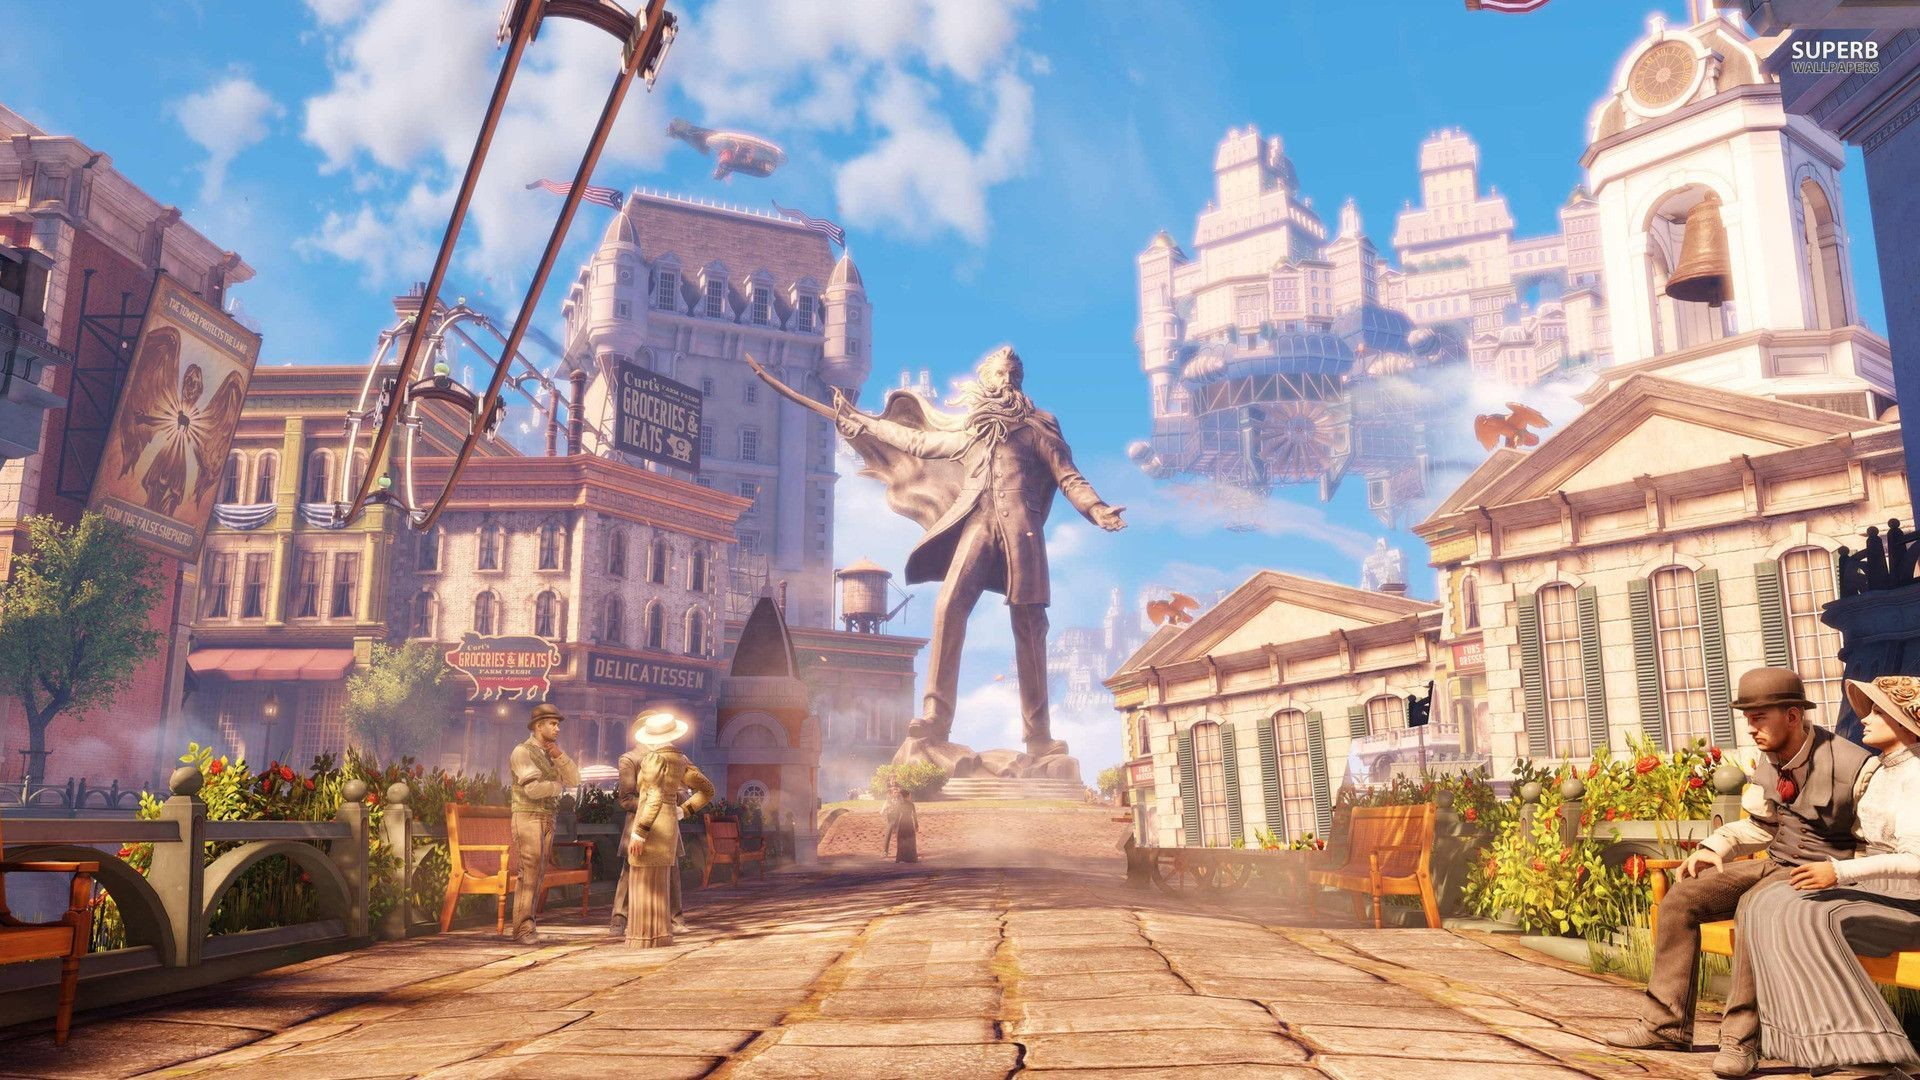 1920x1080 Games Wallpaper Bioshock Infinite HD Resolution For